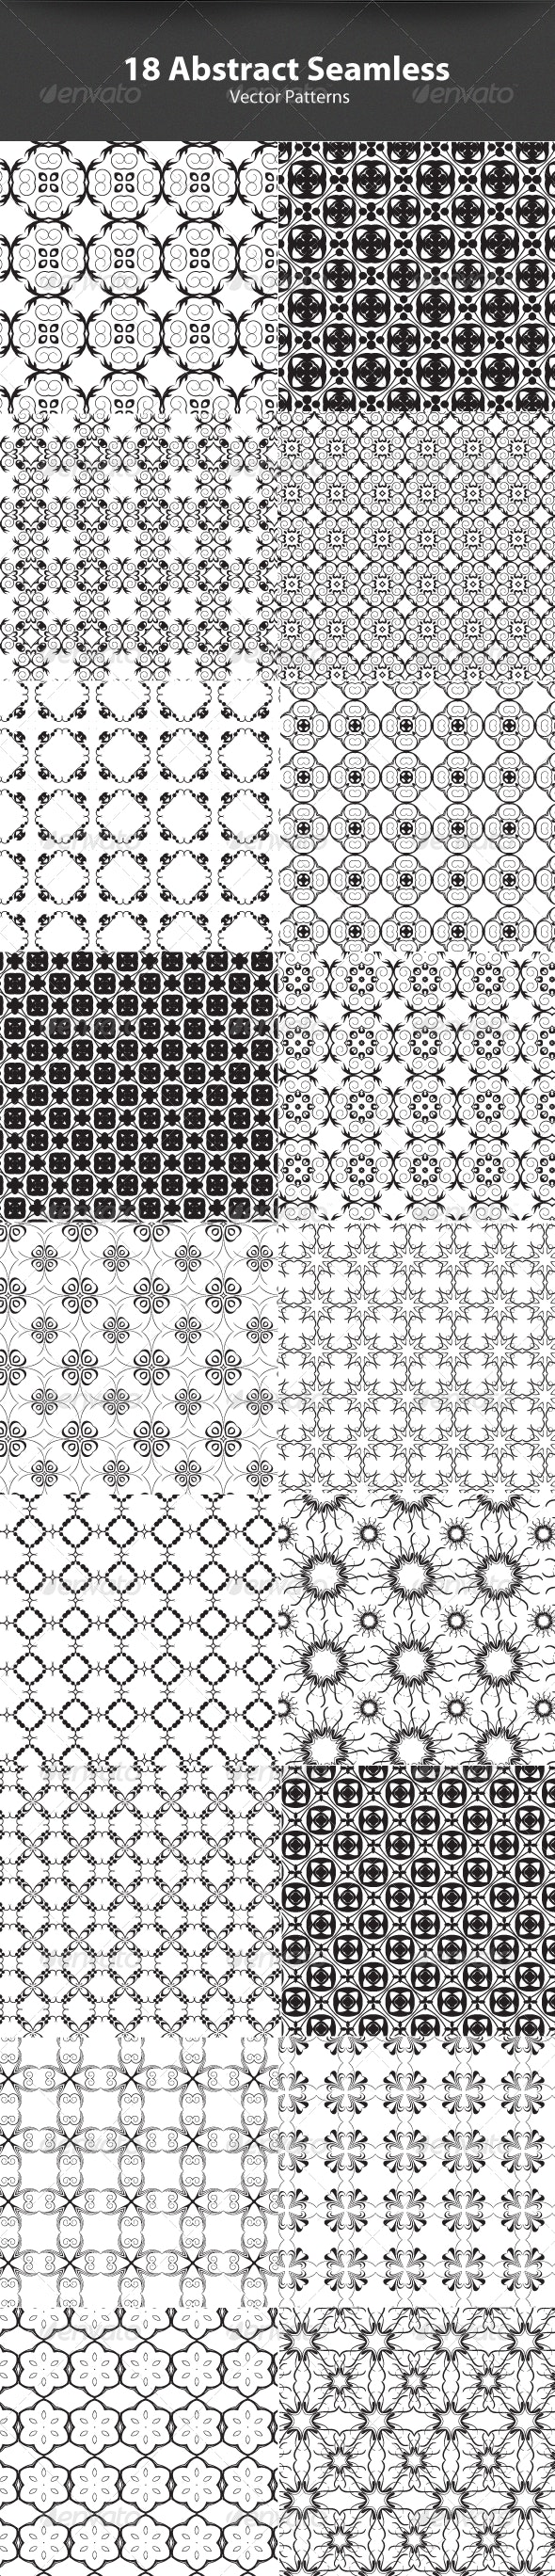 18 Minimal abstract Seamless Vector Patterns - Patterns Decorative